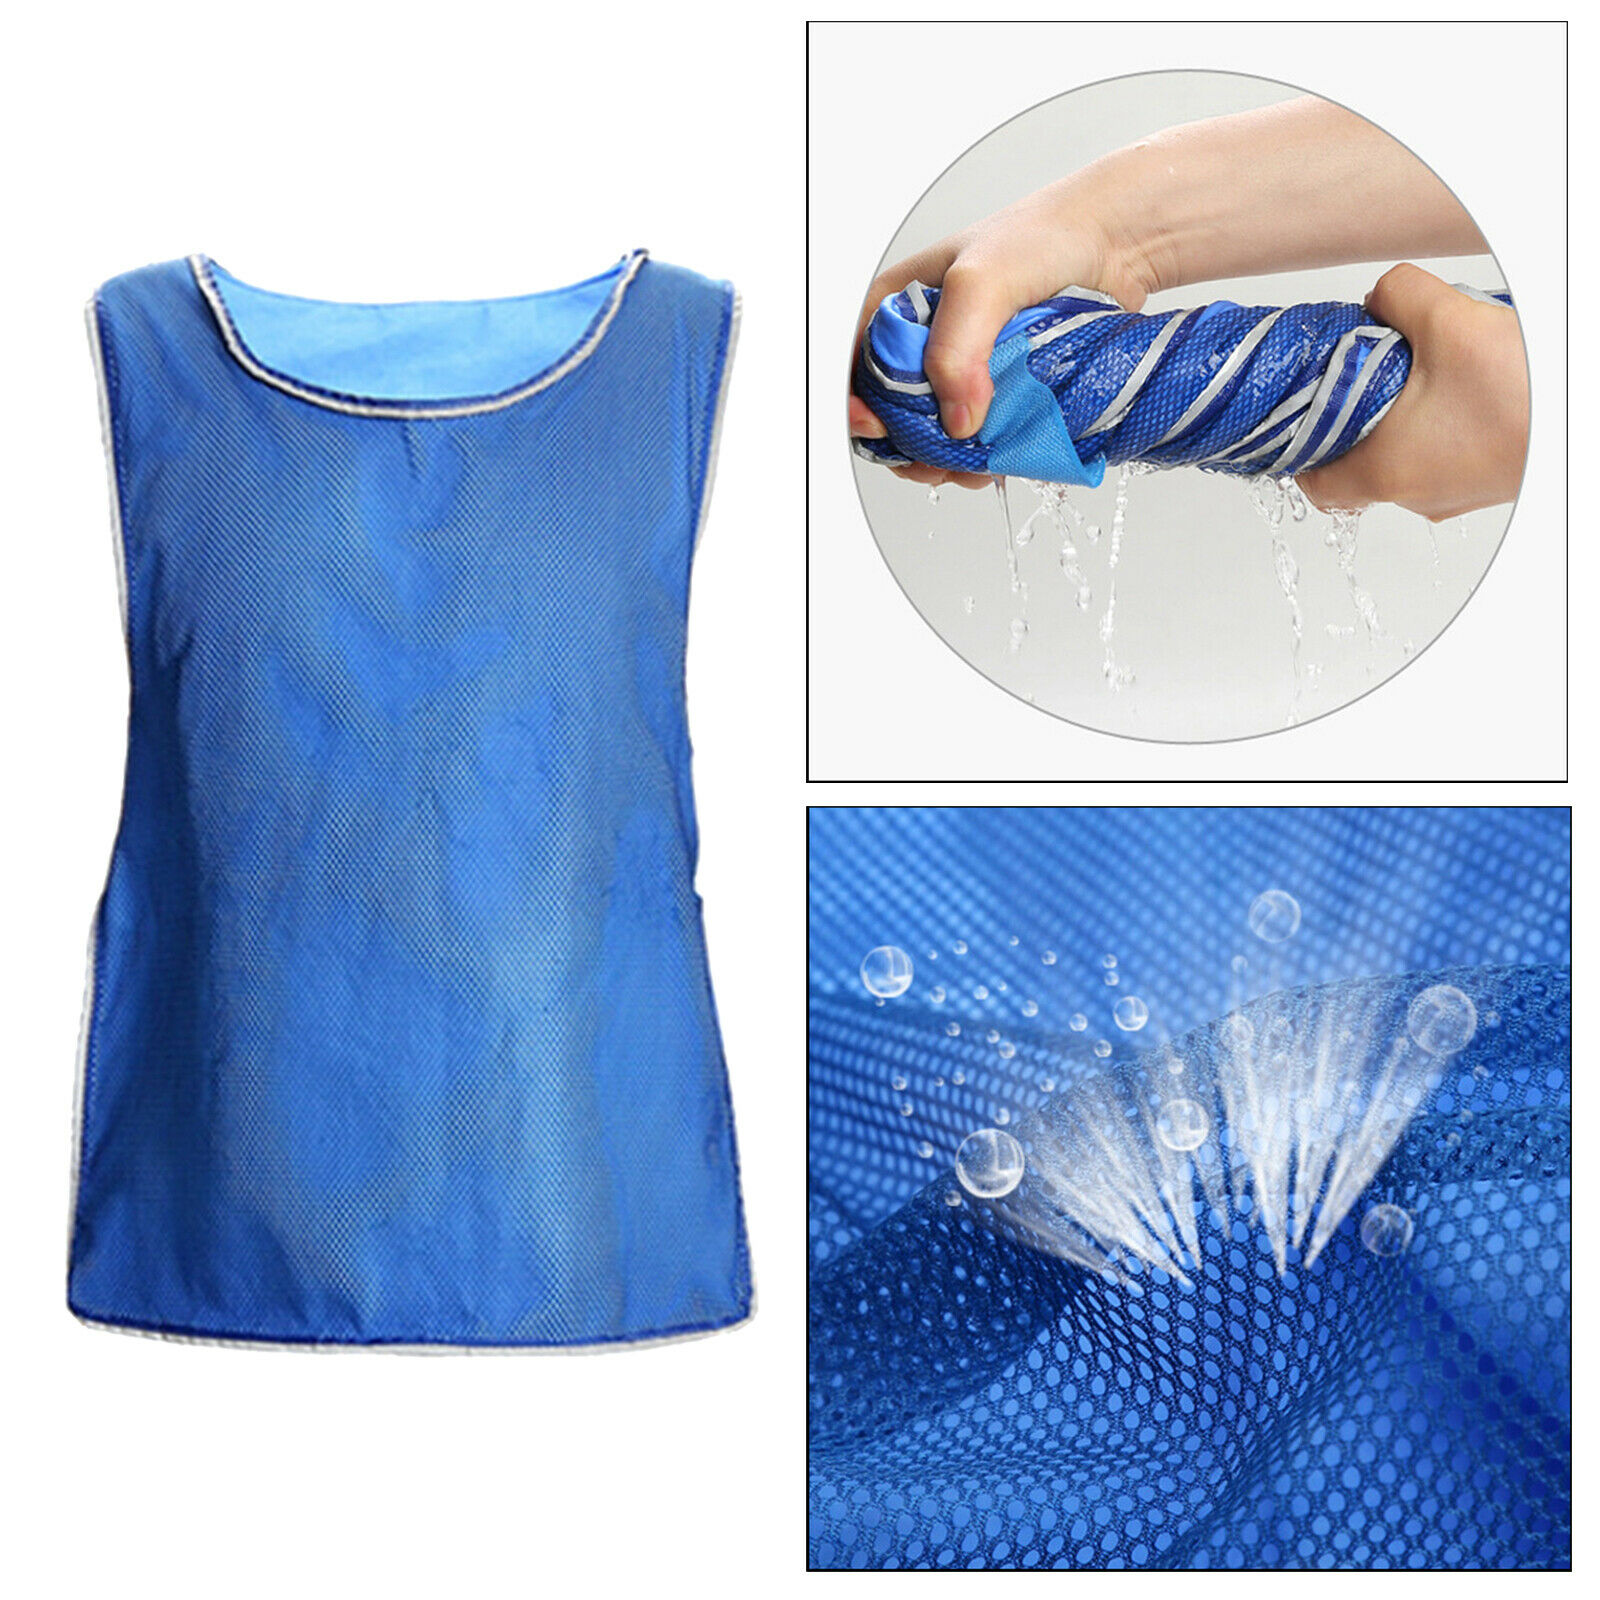 Unisex Mesh Fast Cool Summer Cooling Clothing Shirt Ice Vest for Outdoor